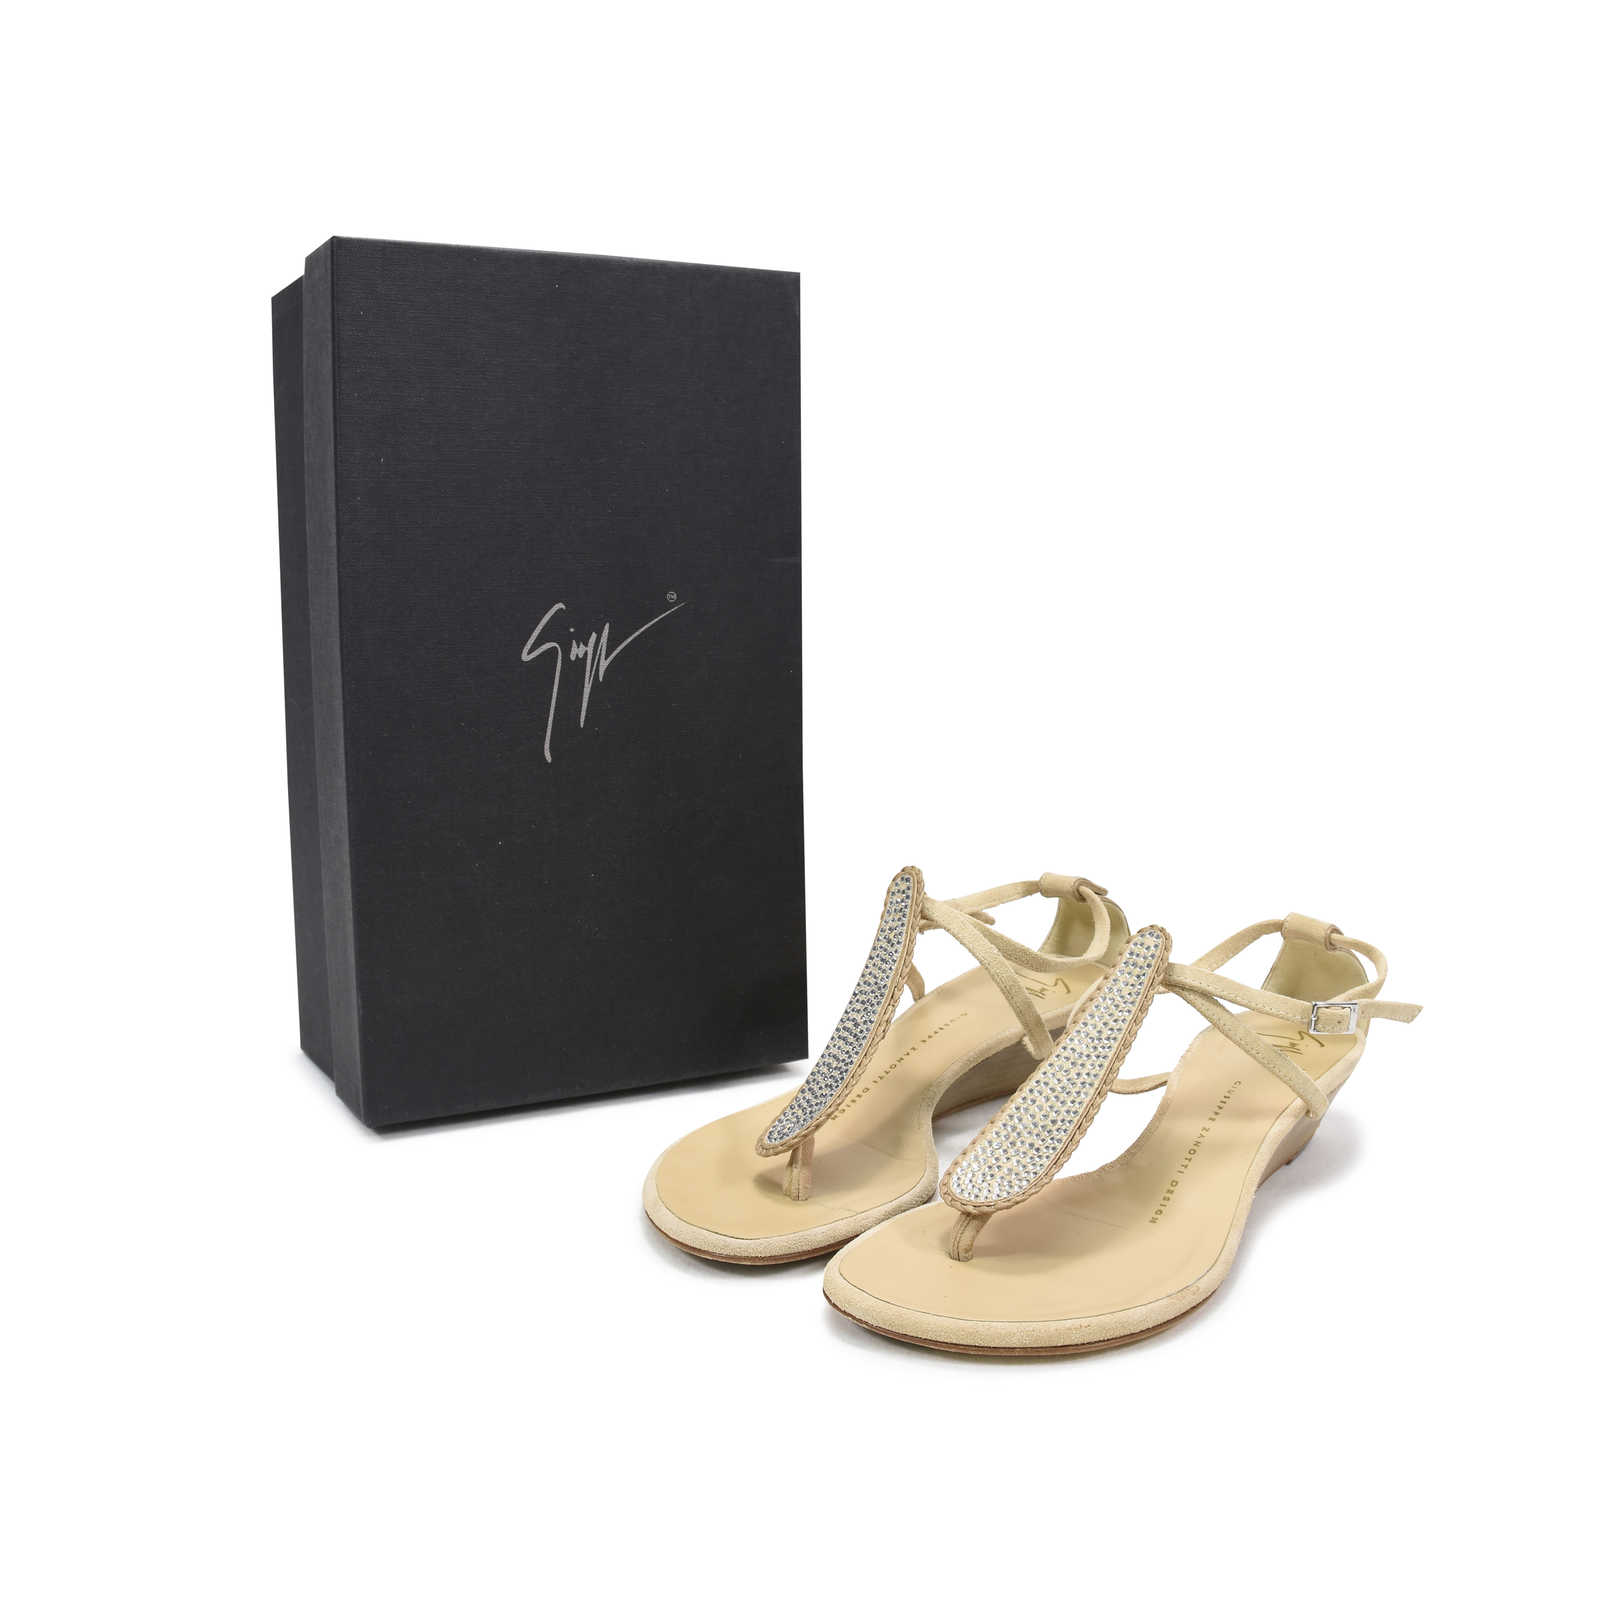 51c6092a3eea4 ... Authentic Second Hand Giuseppe Zanotti Rock 10 Infradito Sandals  (PSS-369-00011)